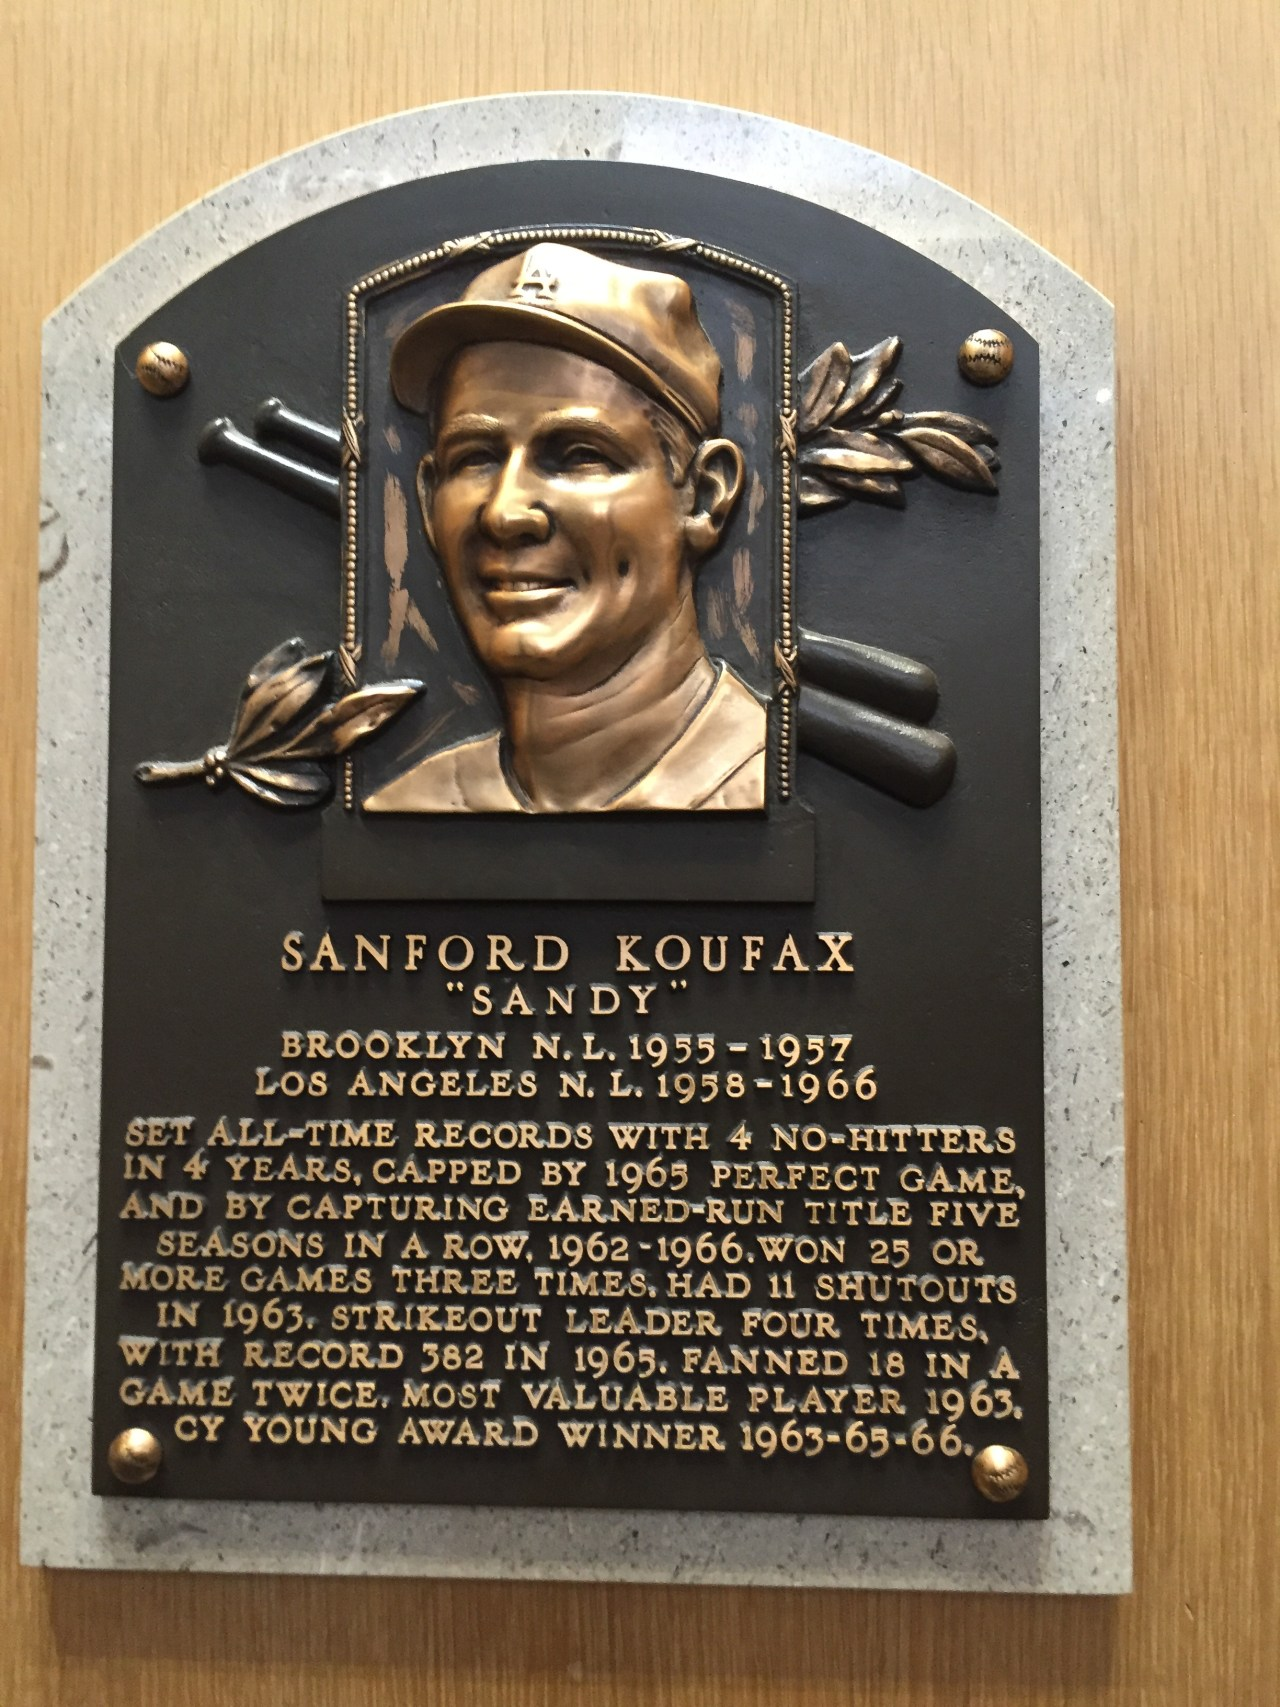 Sandy Koufax' plaque at the Hall of Fame